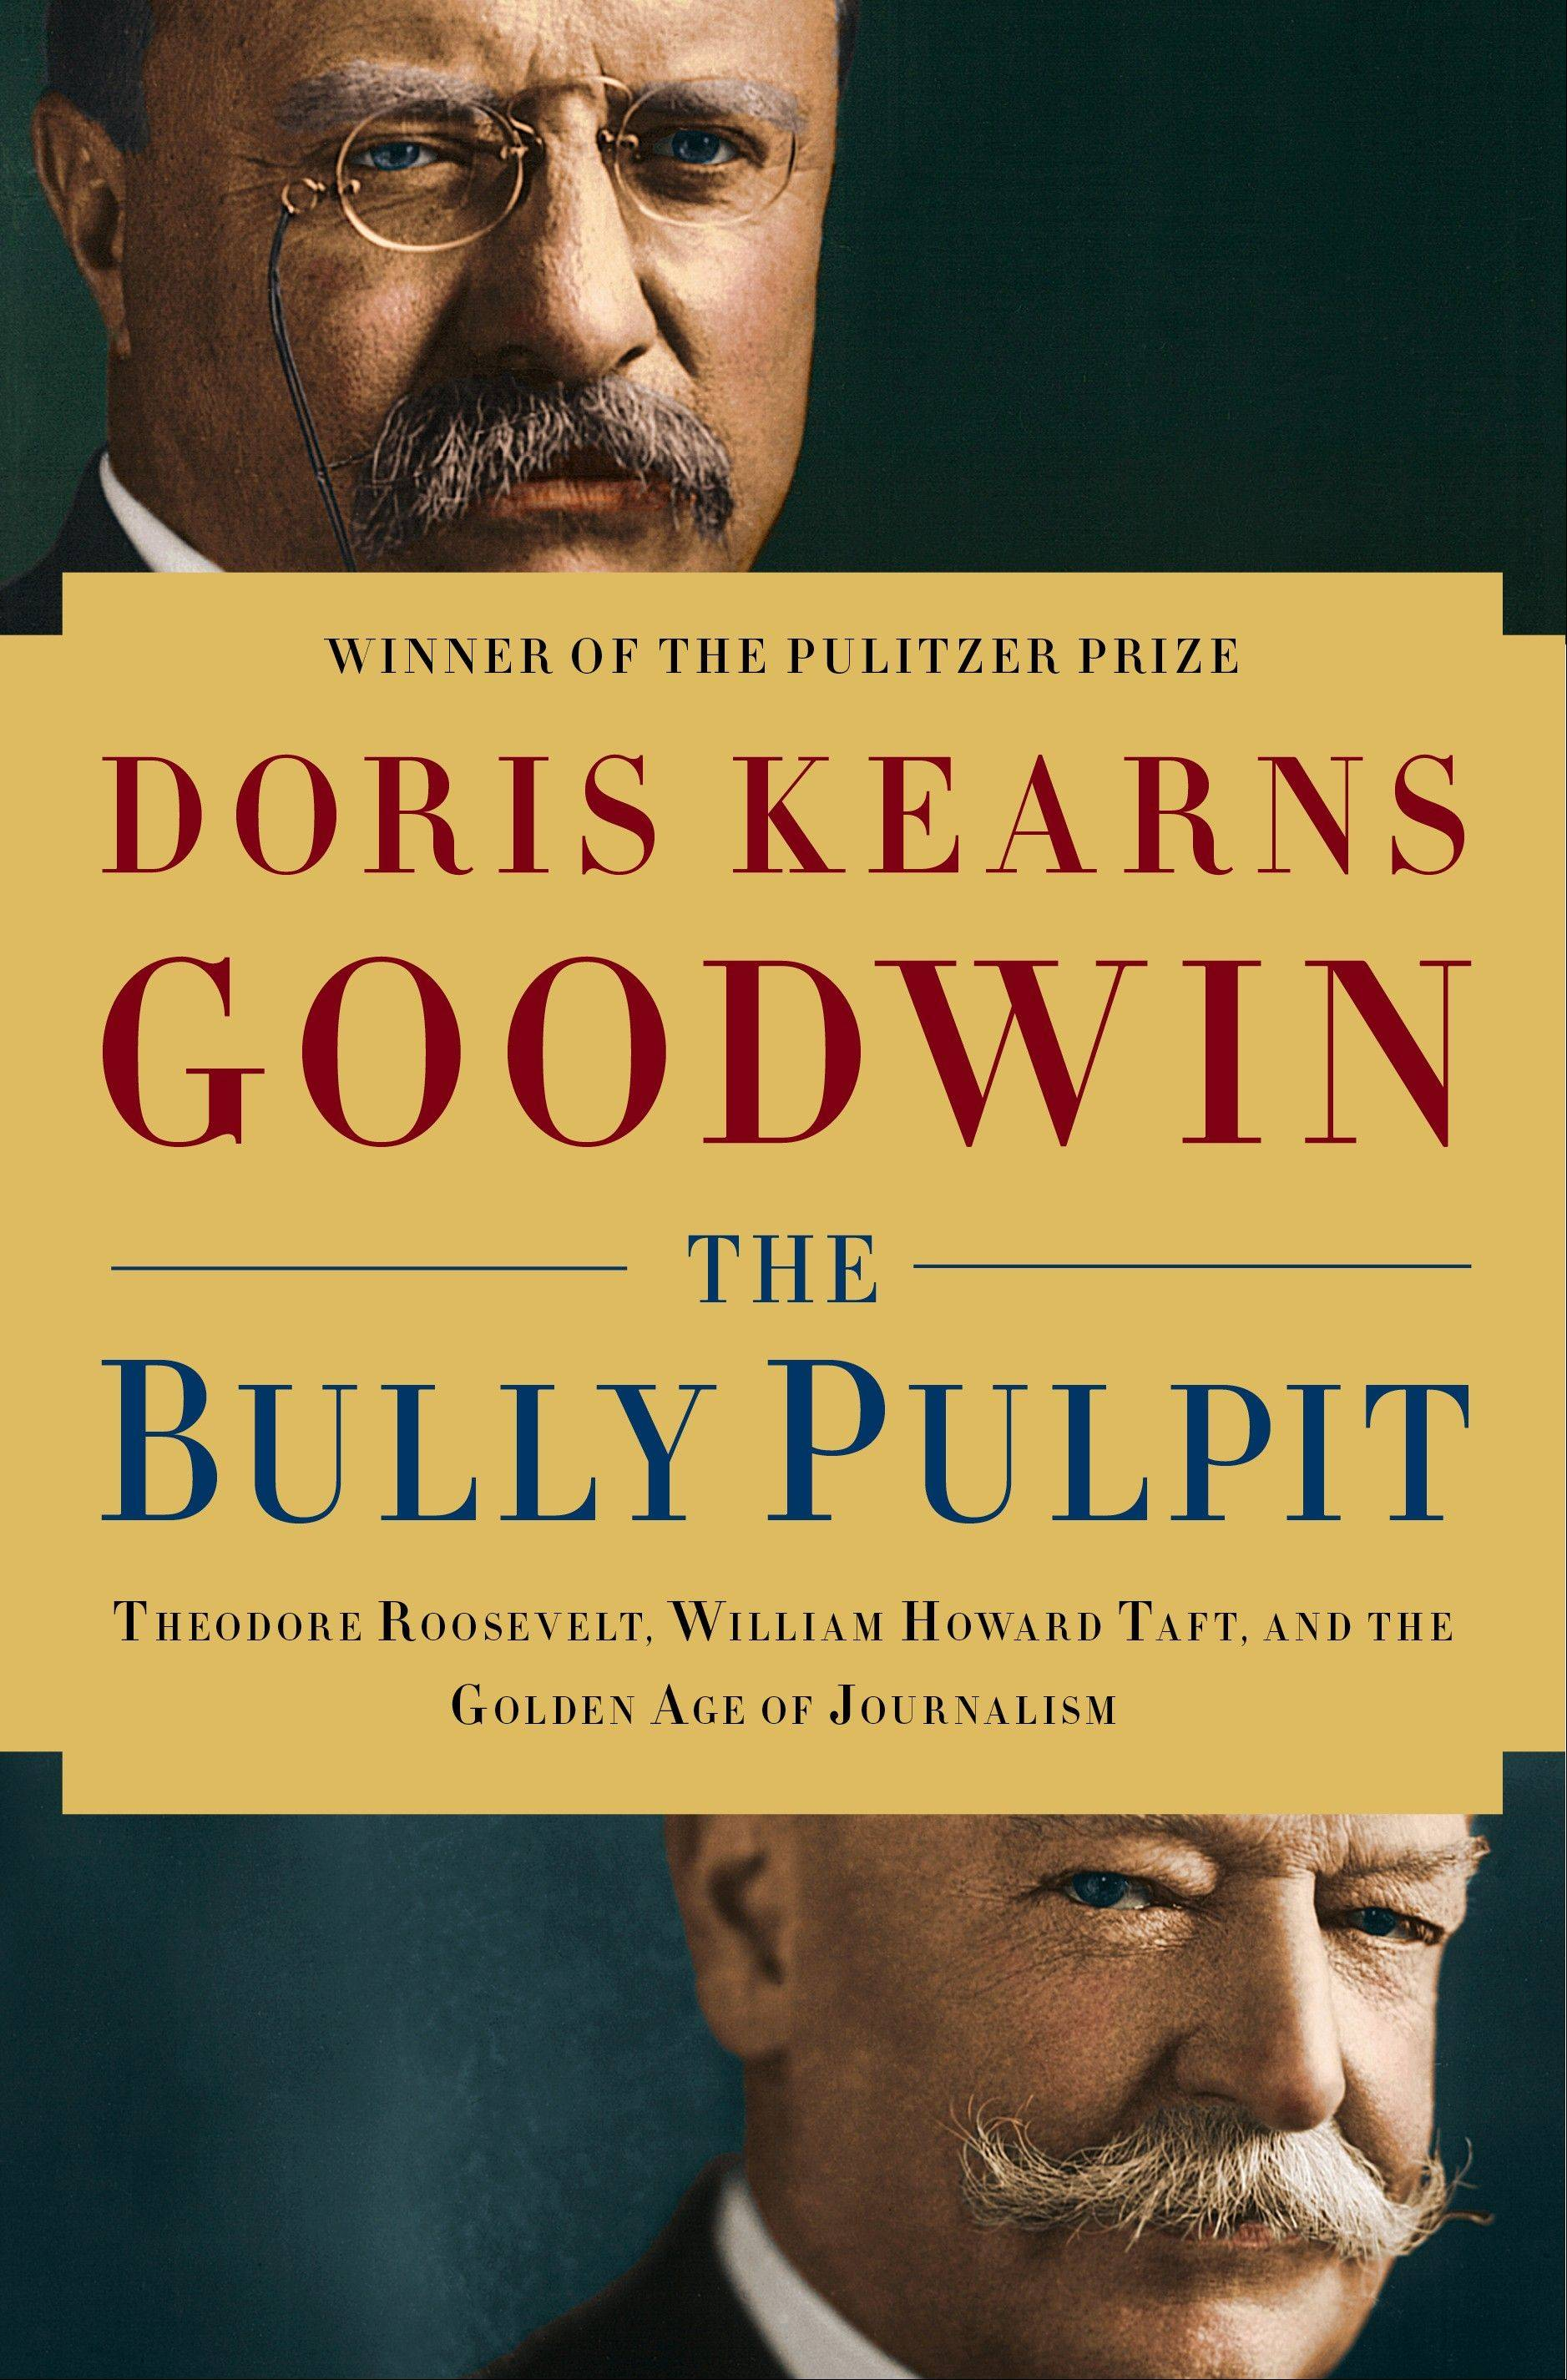 """The Bully Pulpit: Theodore Roosevelt, William Howard Taft, and the Golden Age of Journalism"" by Doris Kearns Goodwin is a dense but absorbing read."